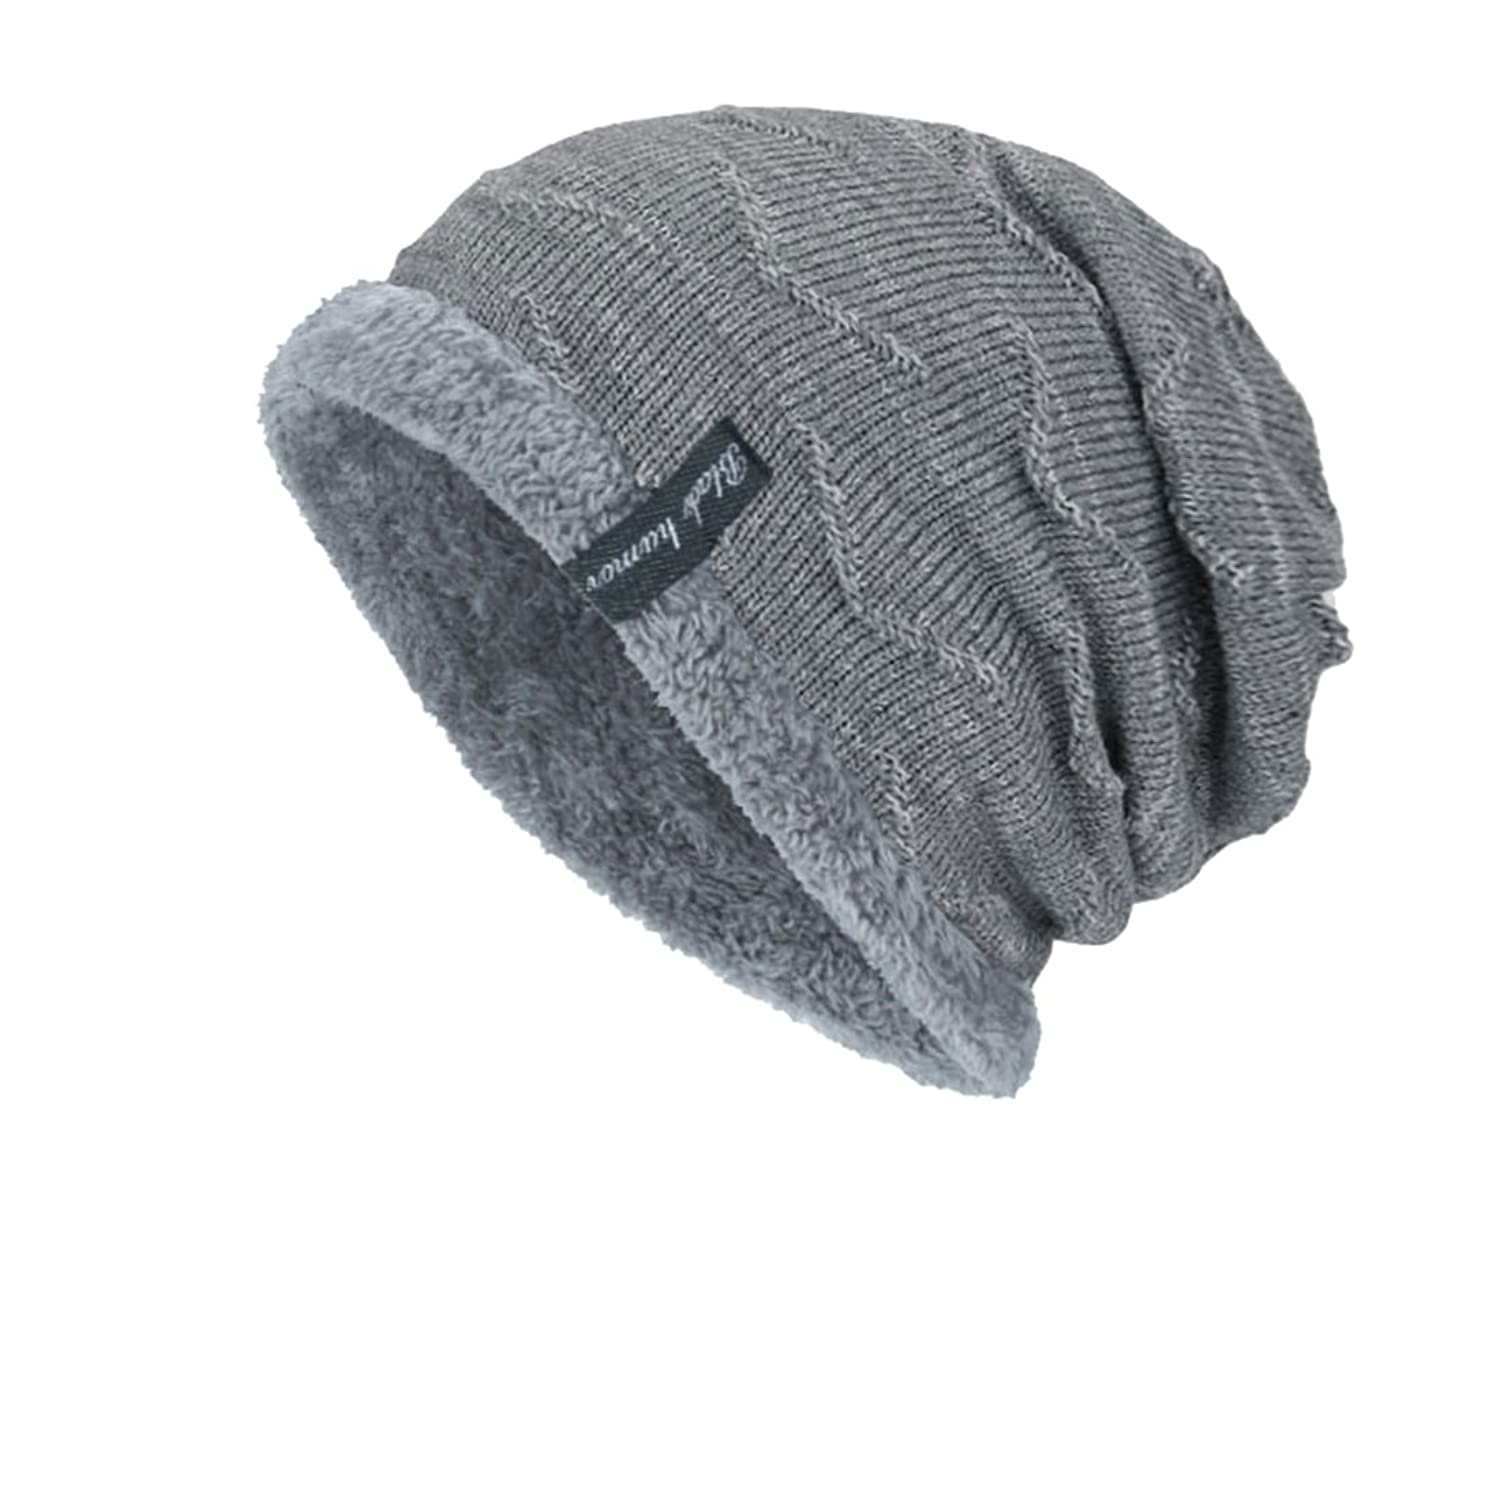 3b9b63bf3c5 DD UP Winter Beanie Hat Men Warm Knit Thick Skull Cap With Soft Fleece  Lining  Amazon.co.uk  Clothing